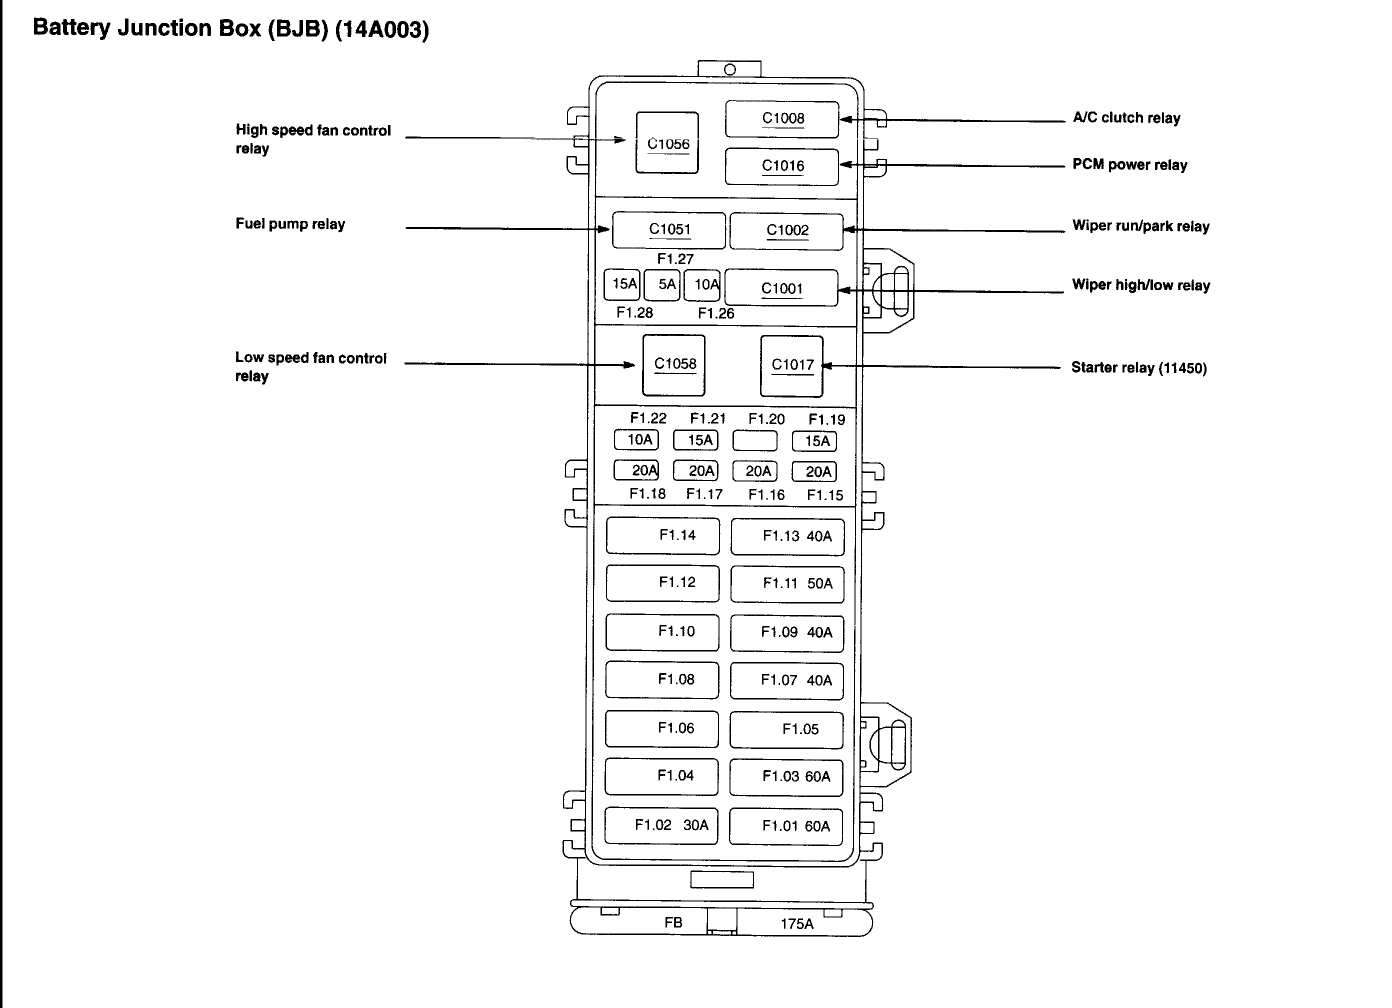 hight resolution of 2006 ford taurus fuel pump wiring diagram wiring library 2003 ford windstar fuel pump wiring diagram 2003 ford taurus fuel pump wiring diagram